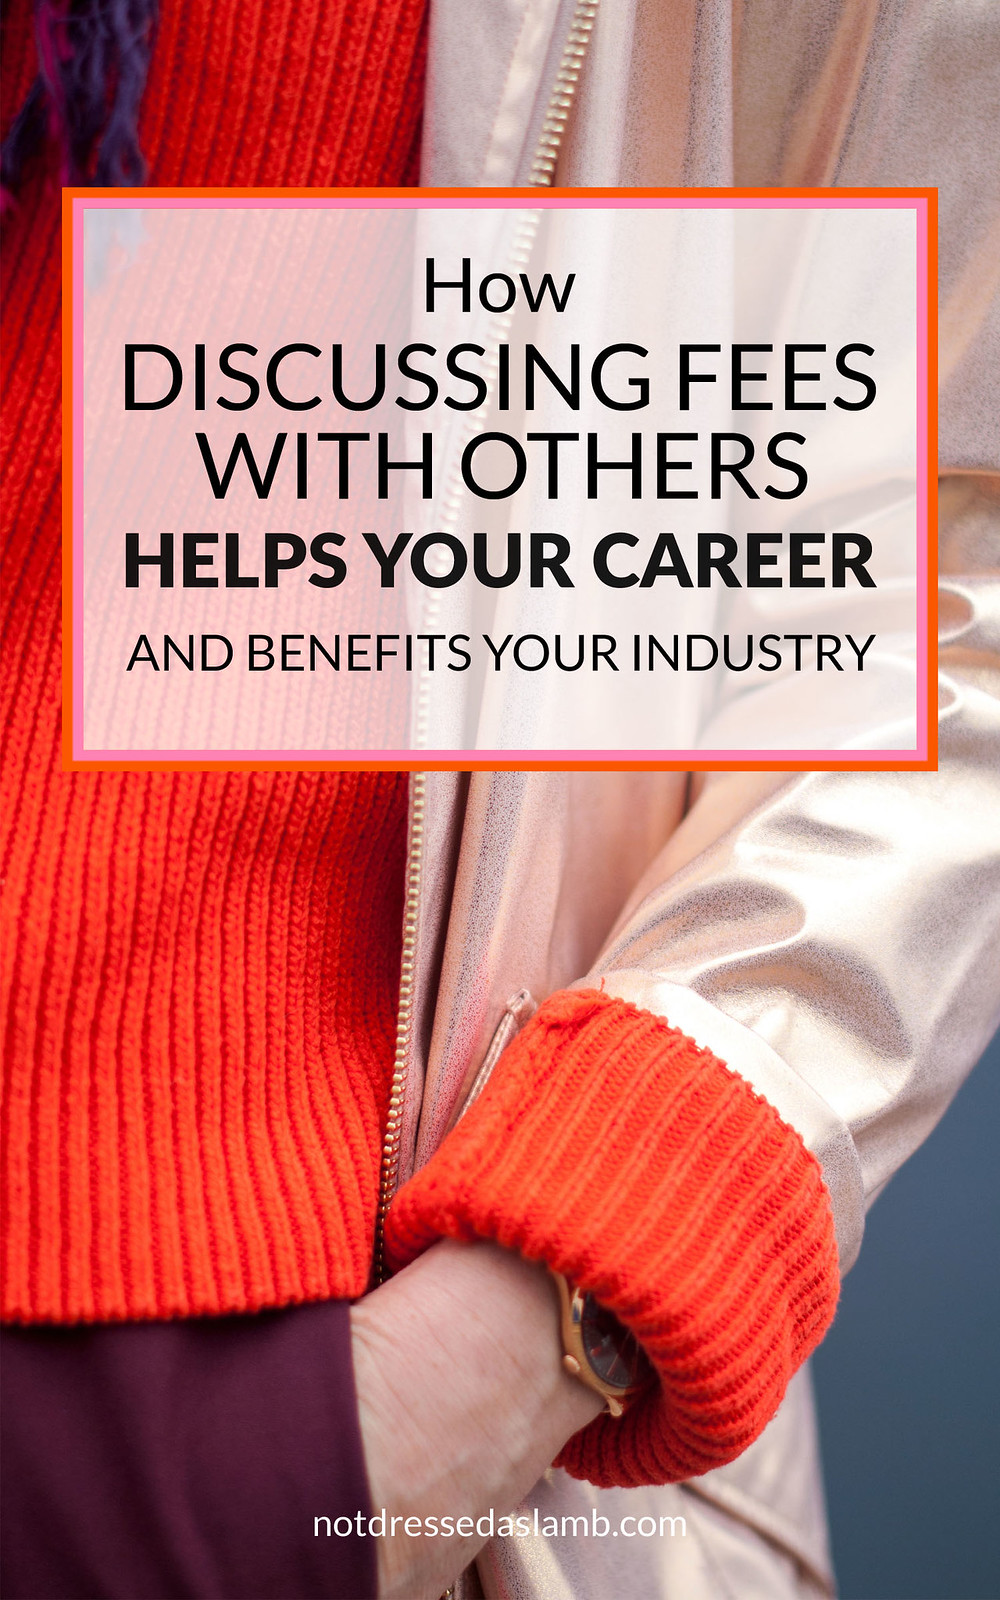 How Discussing Fees With Others Helps Your Career and Benefits Your Industry | Not Dressed As Lamb